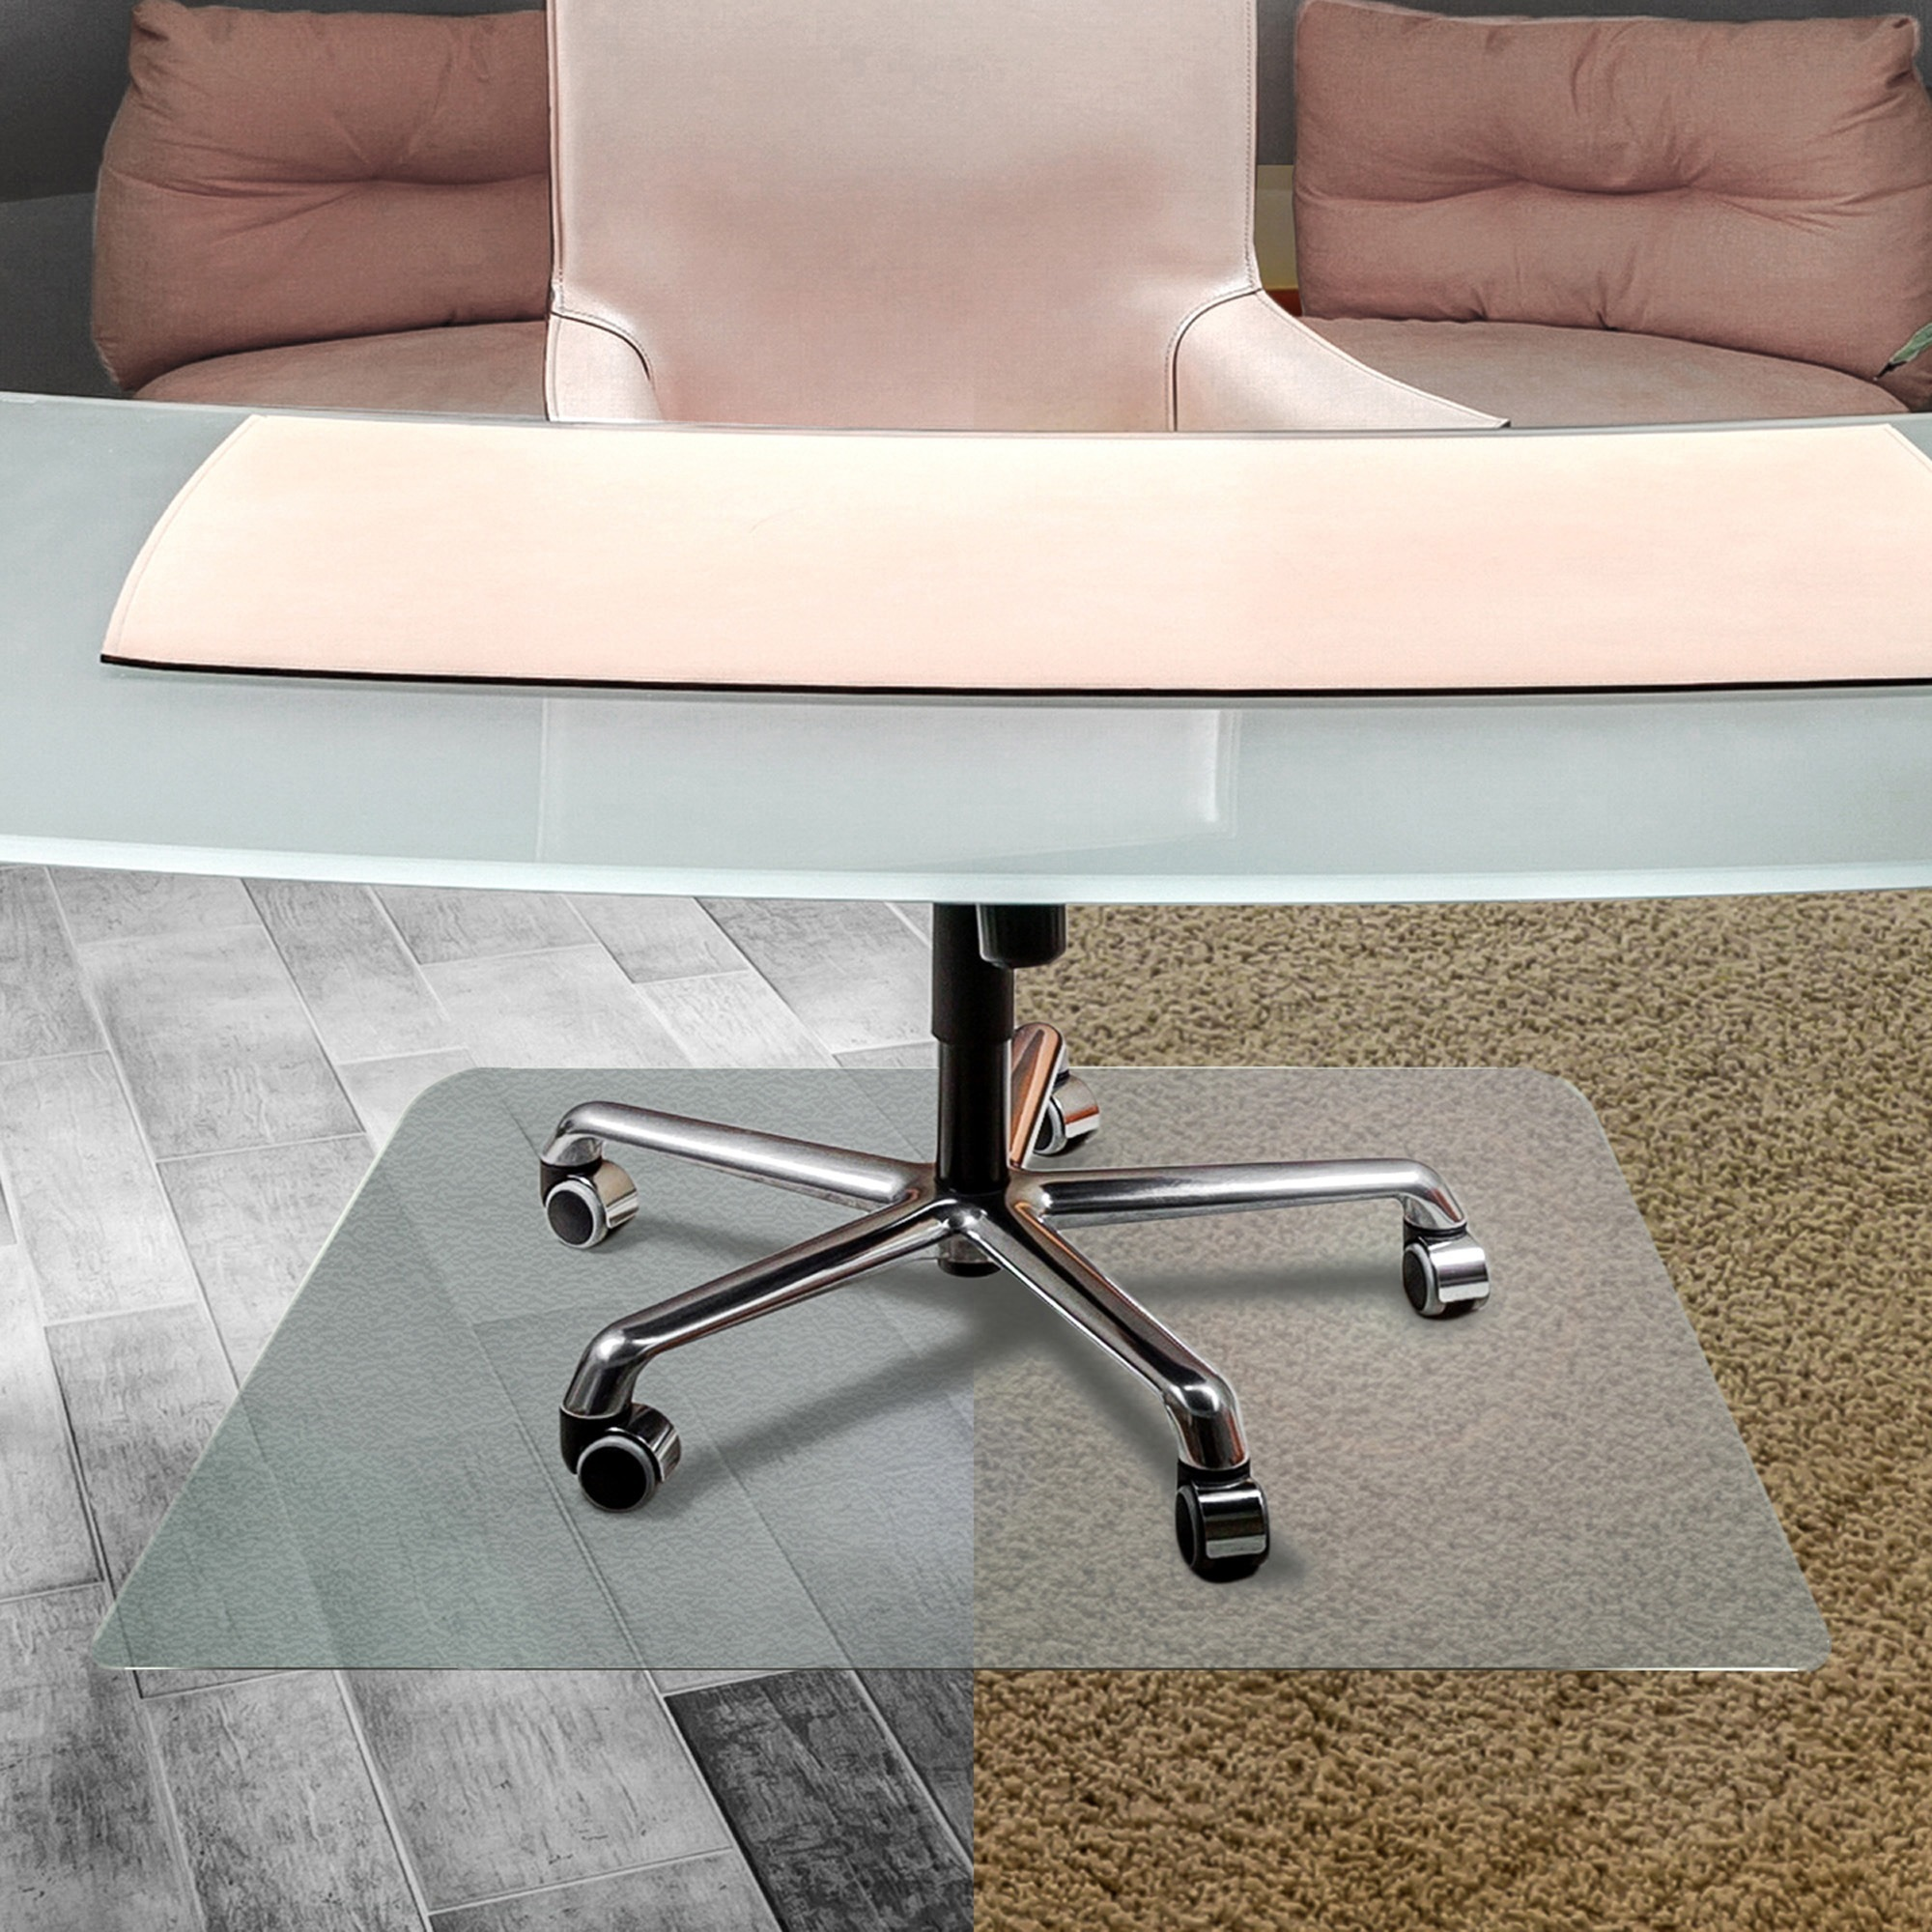 Cleartex UnoMat Hard Floor/Very Low Pile Chair Mat